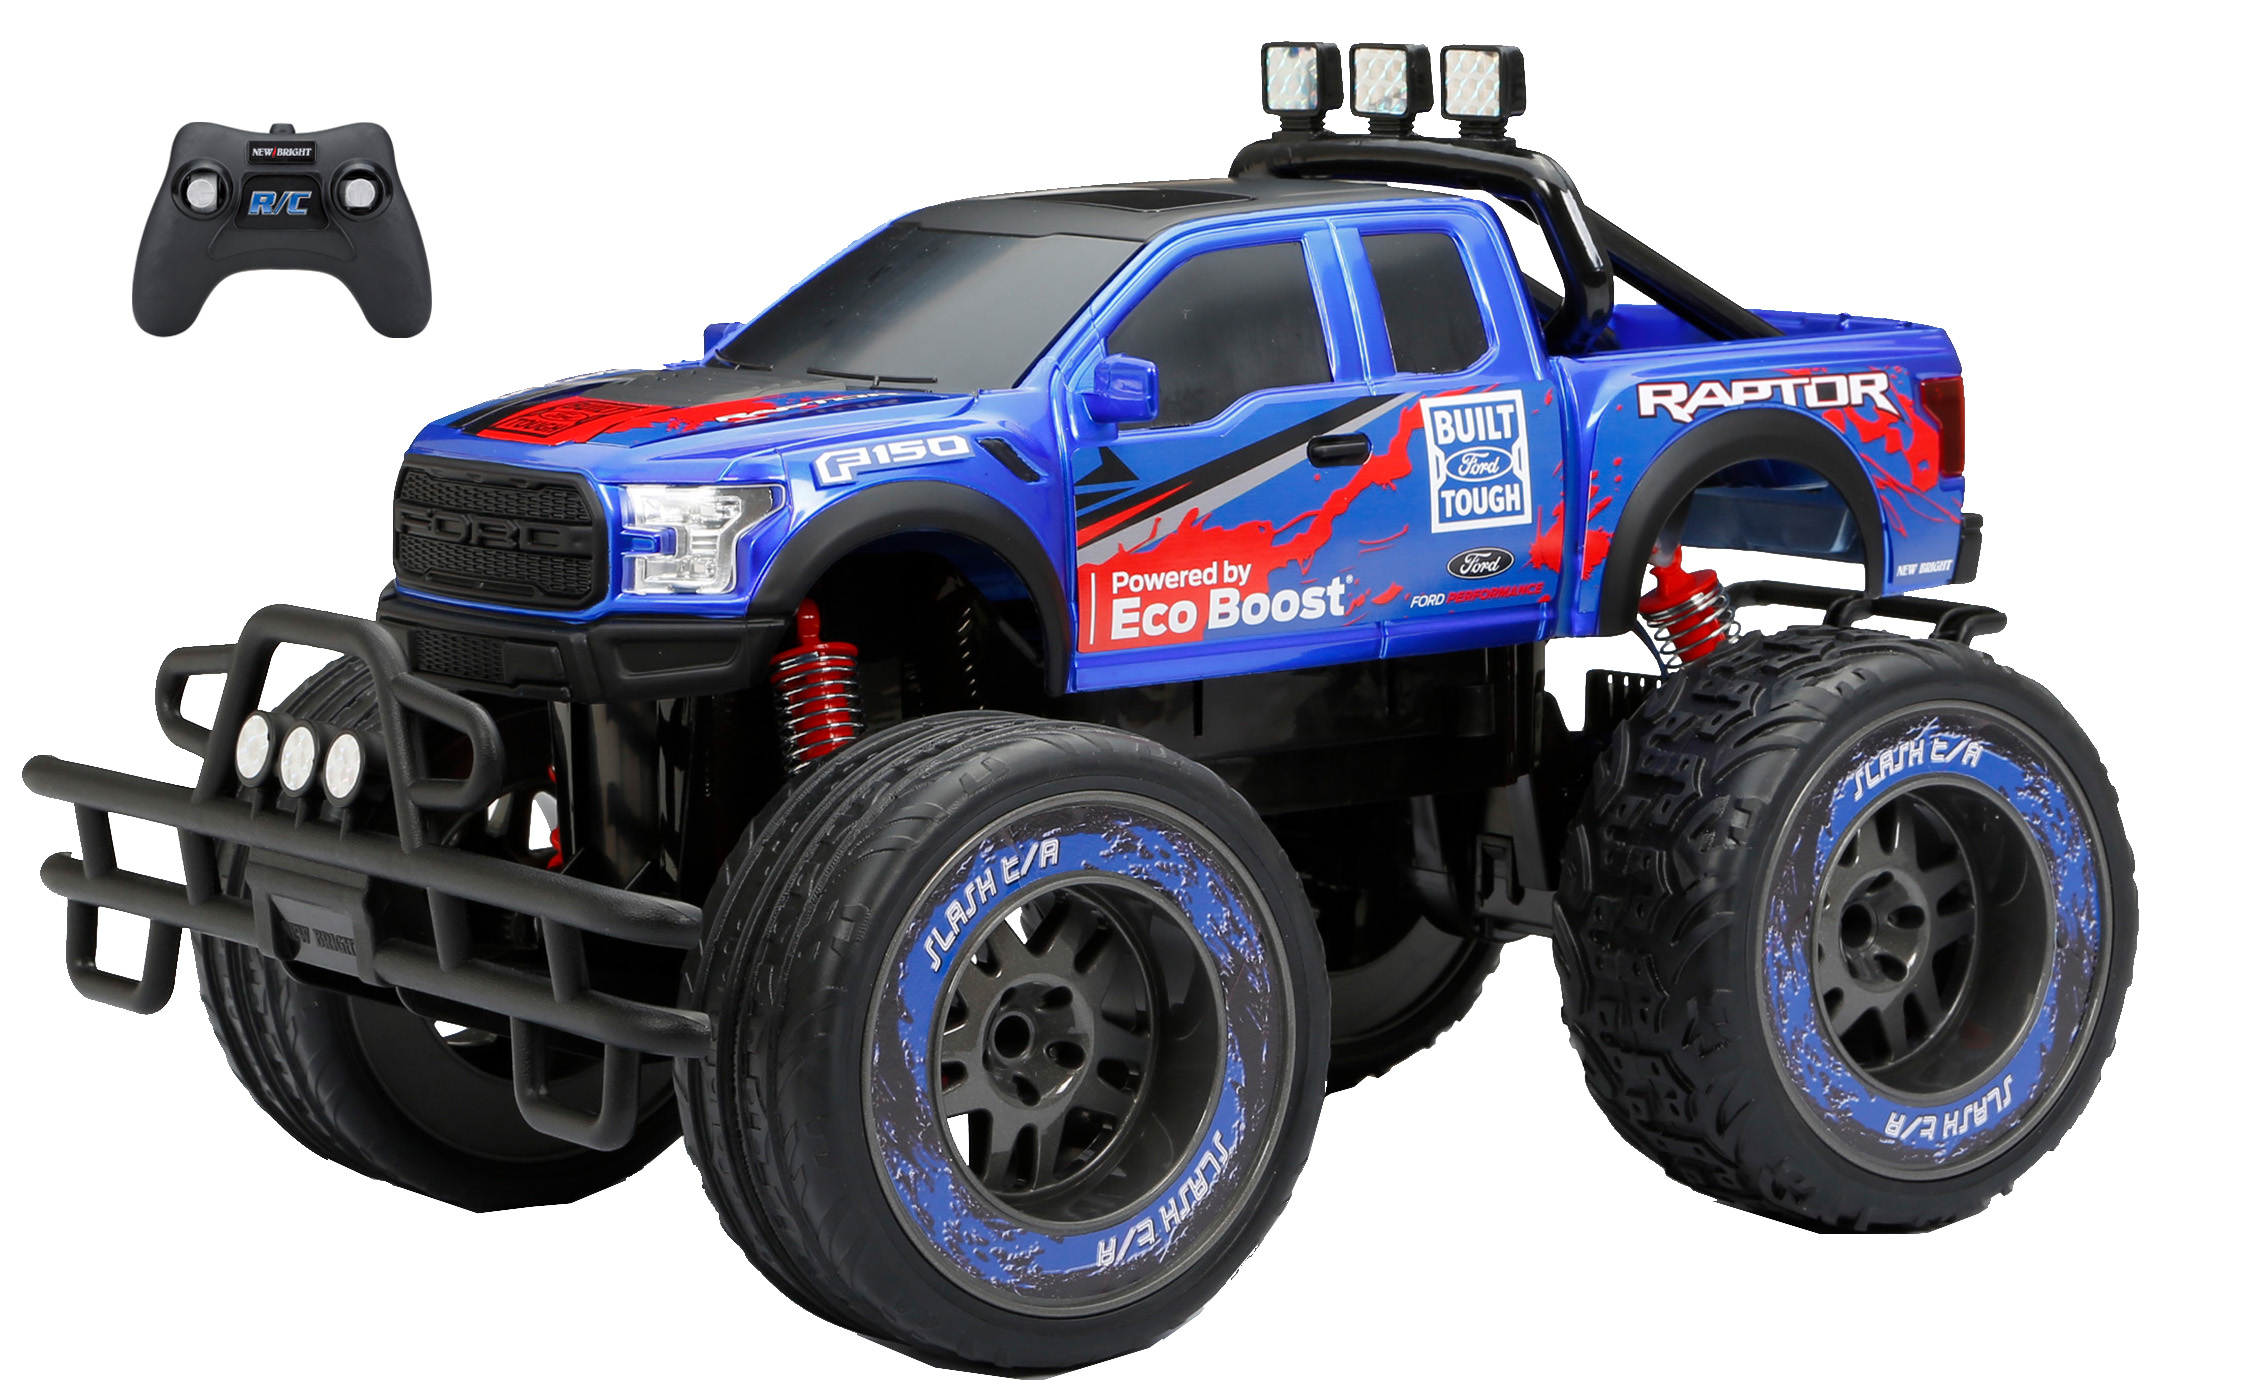 New Bright 1:10 Radio Control 9.6v Ford Raptor Truck- Blue by New Bright Industrial Co., Ltd.